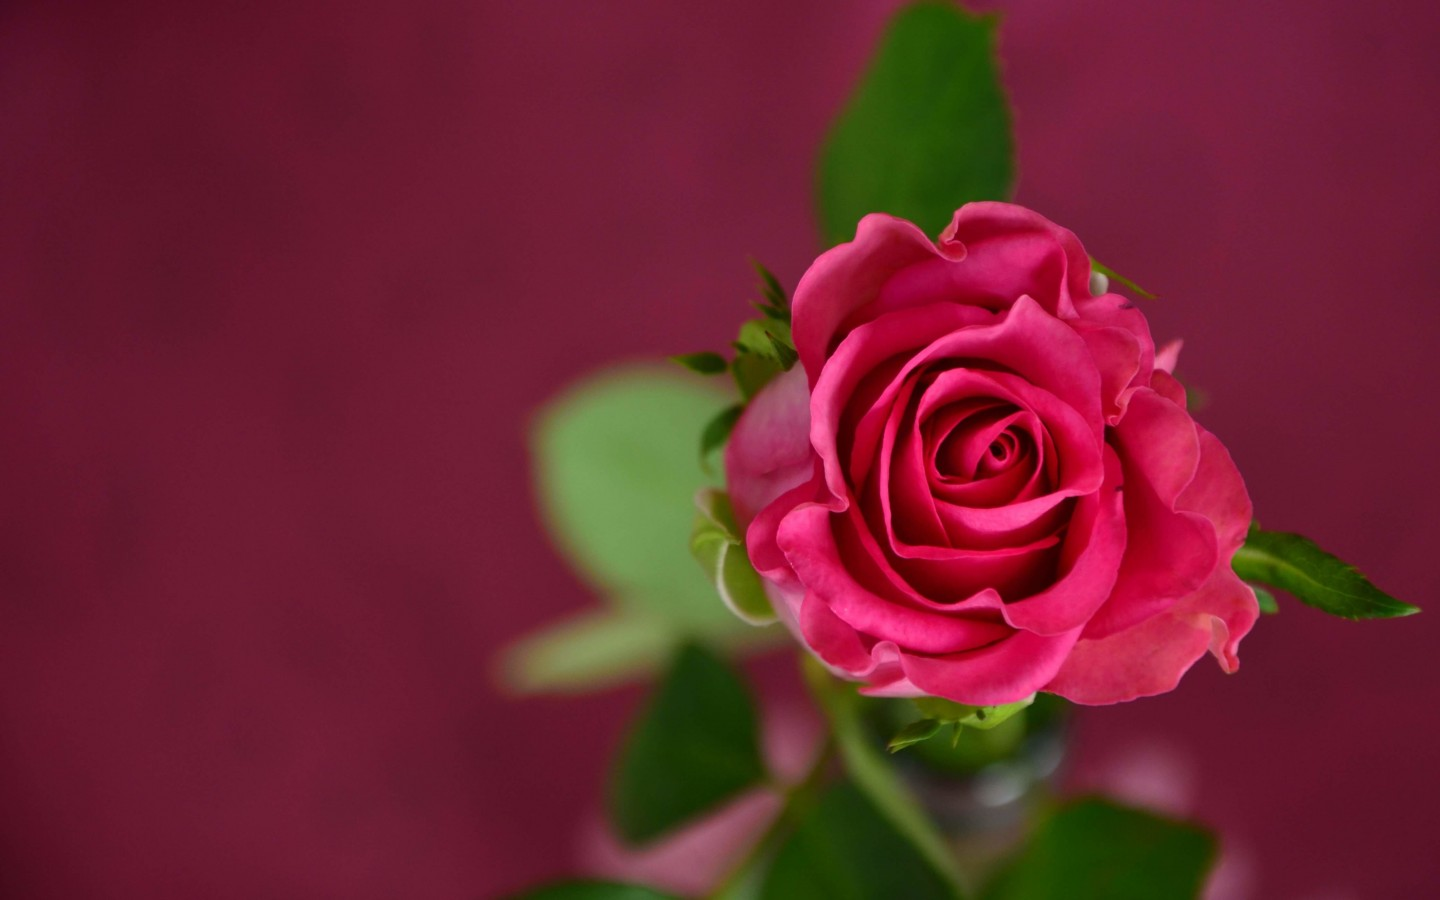 Single Pink Rose Wallpaper for Desktop 1440x900